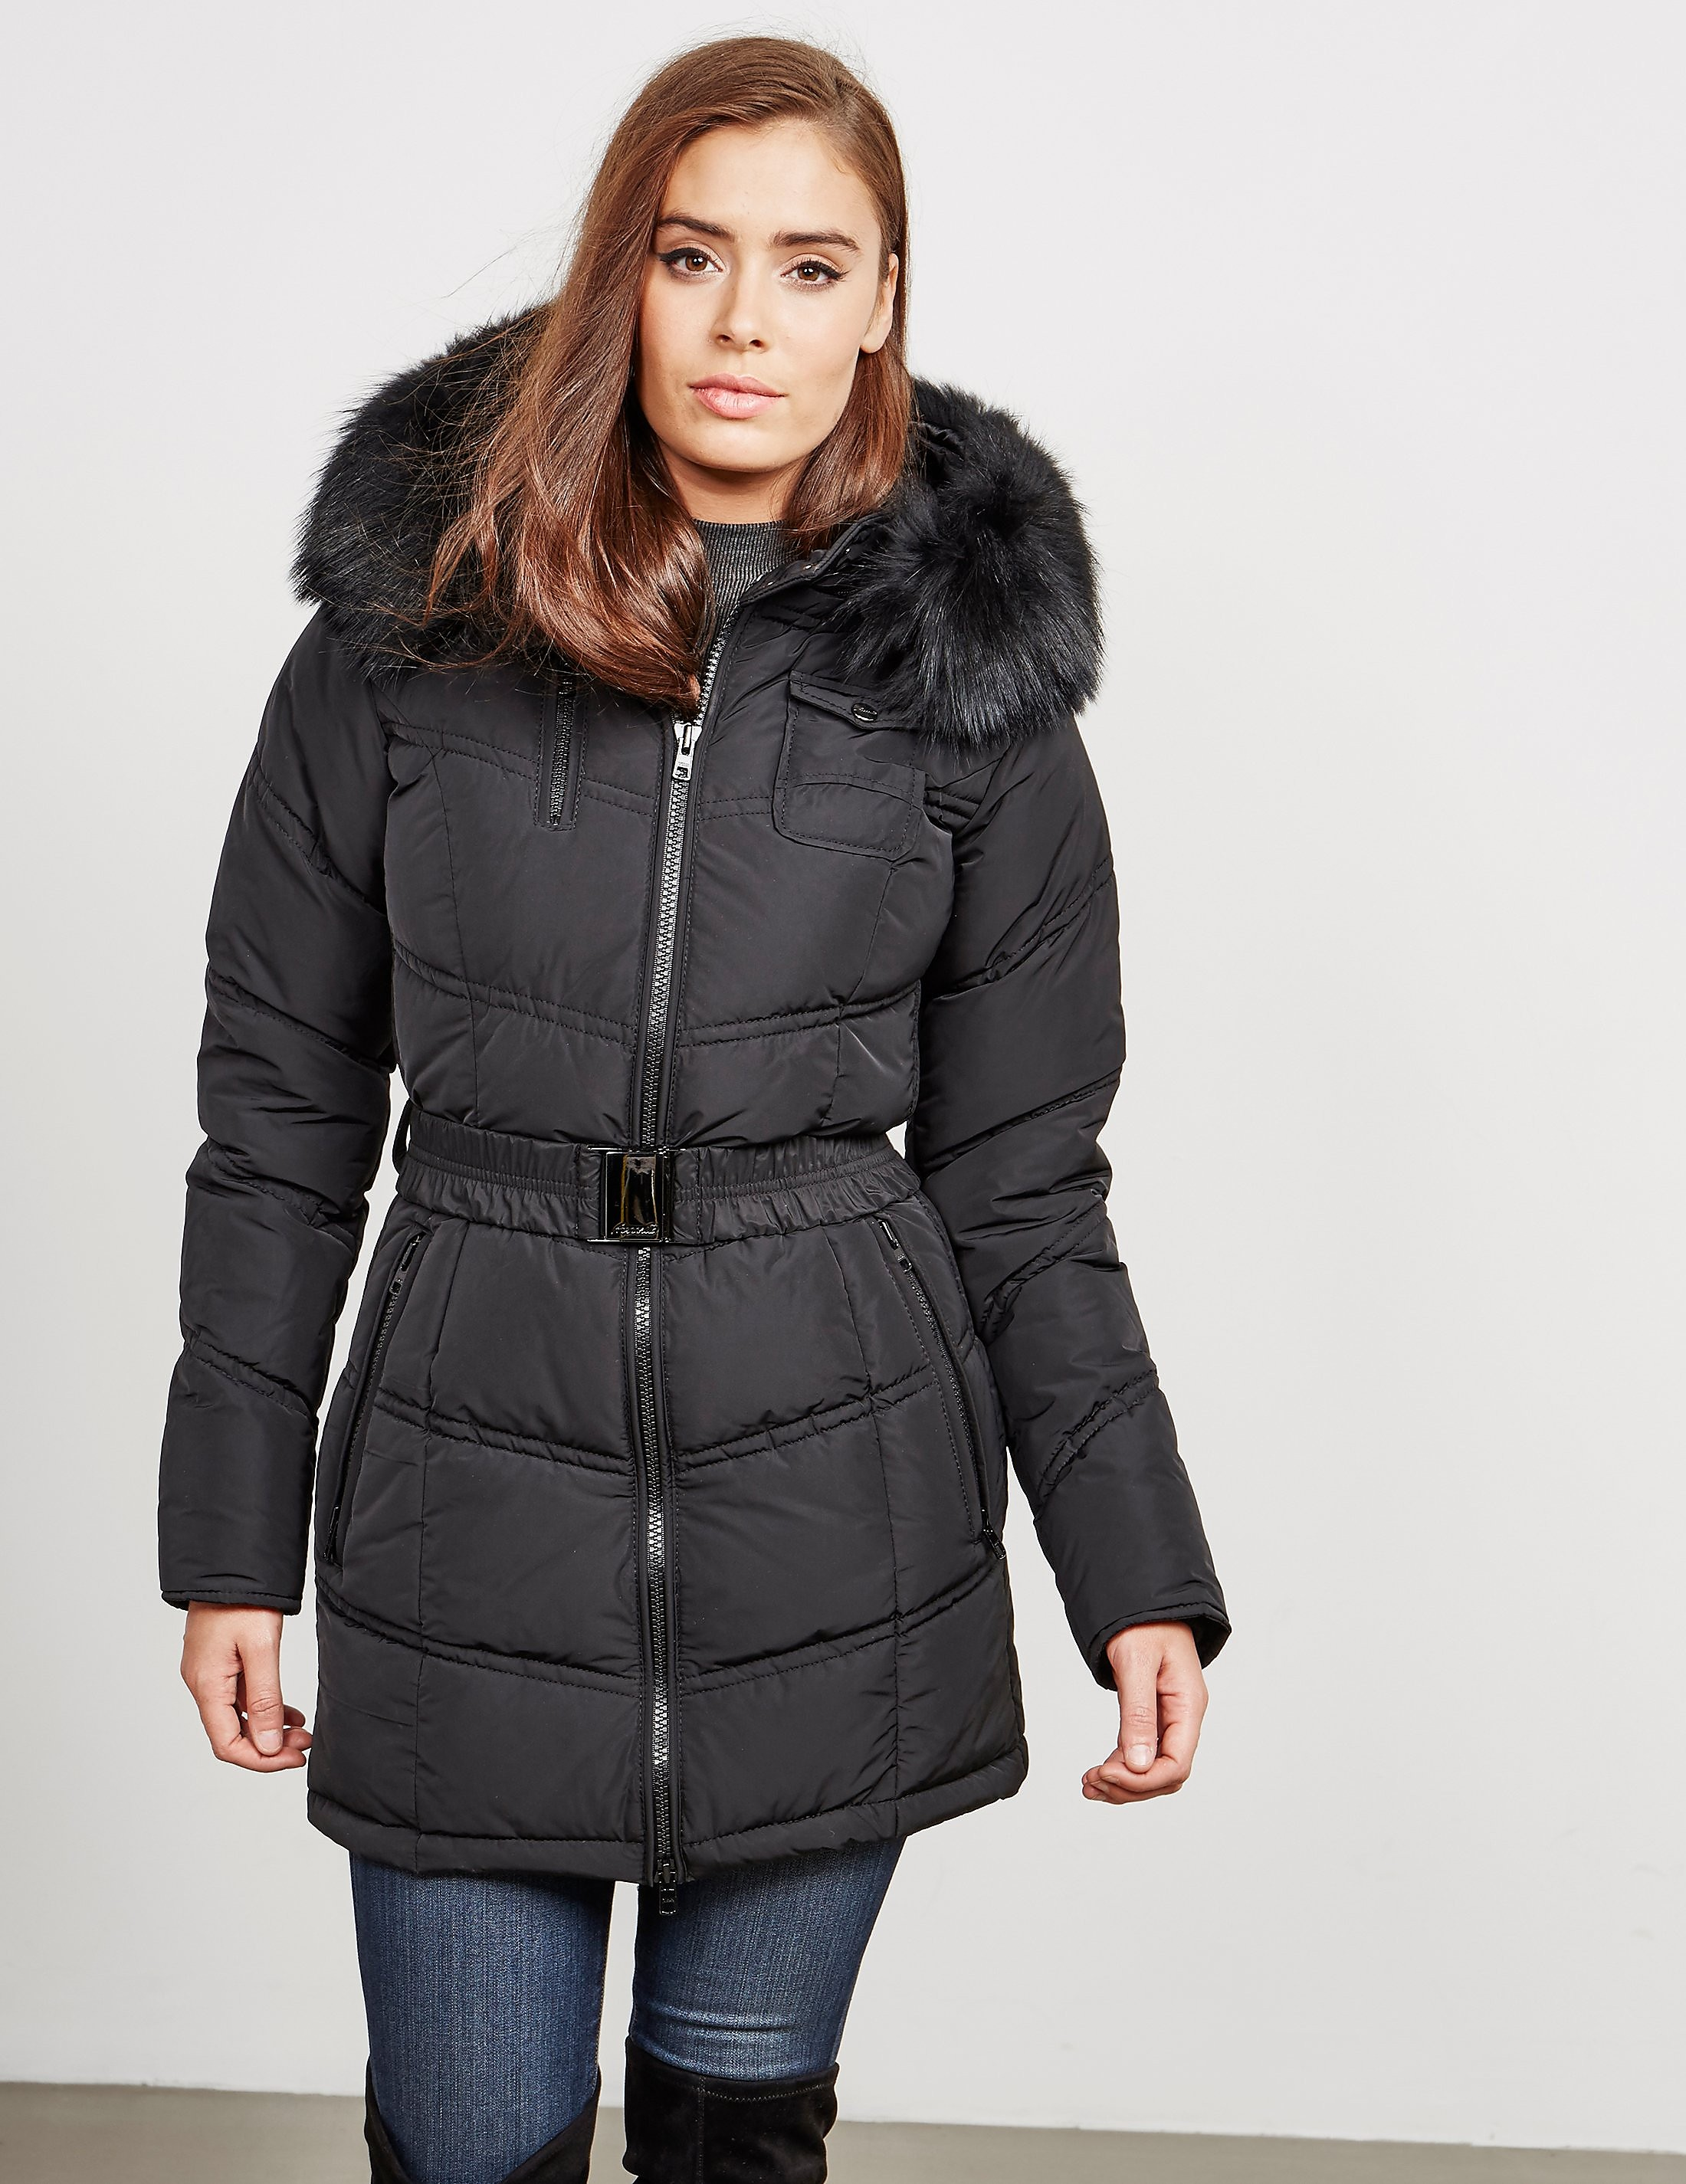 Froccella Belted Padded Jacket